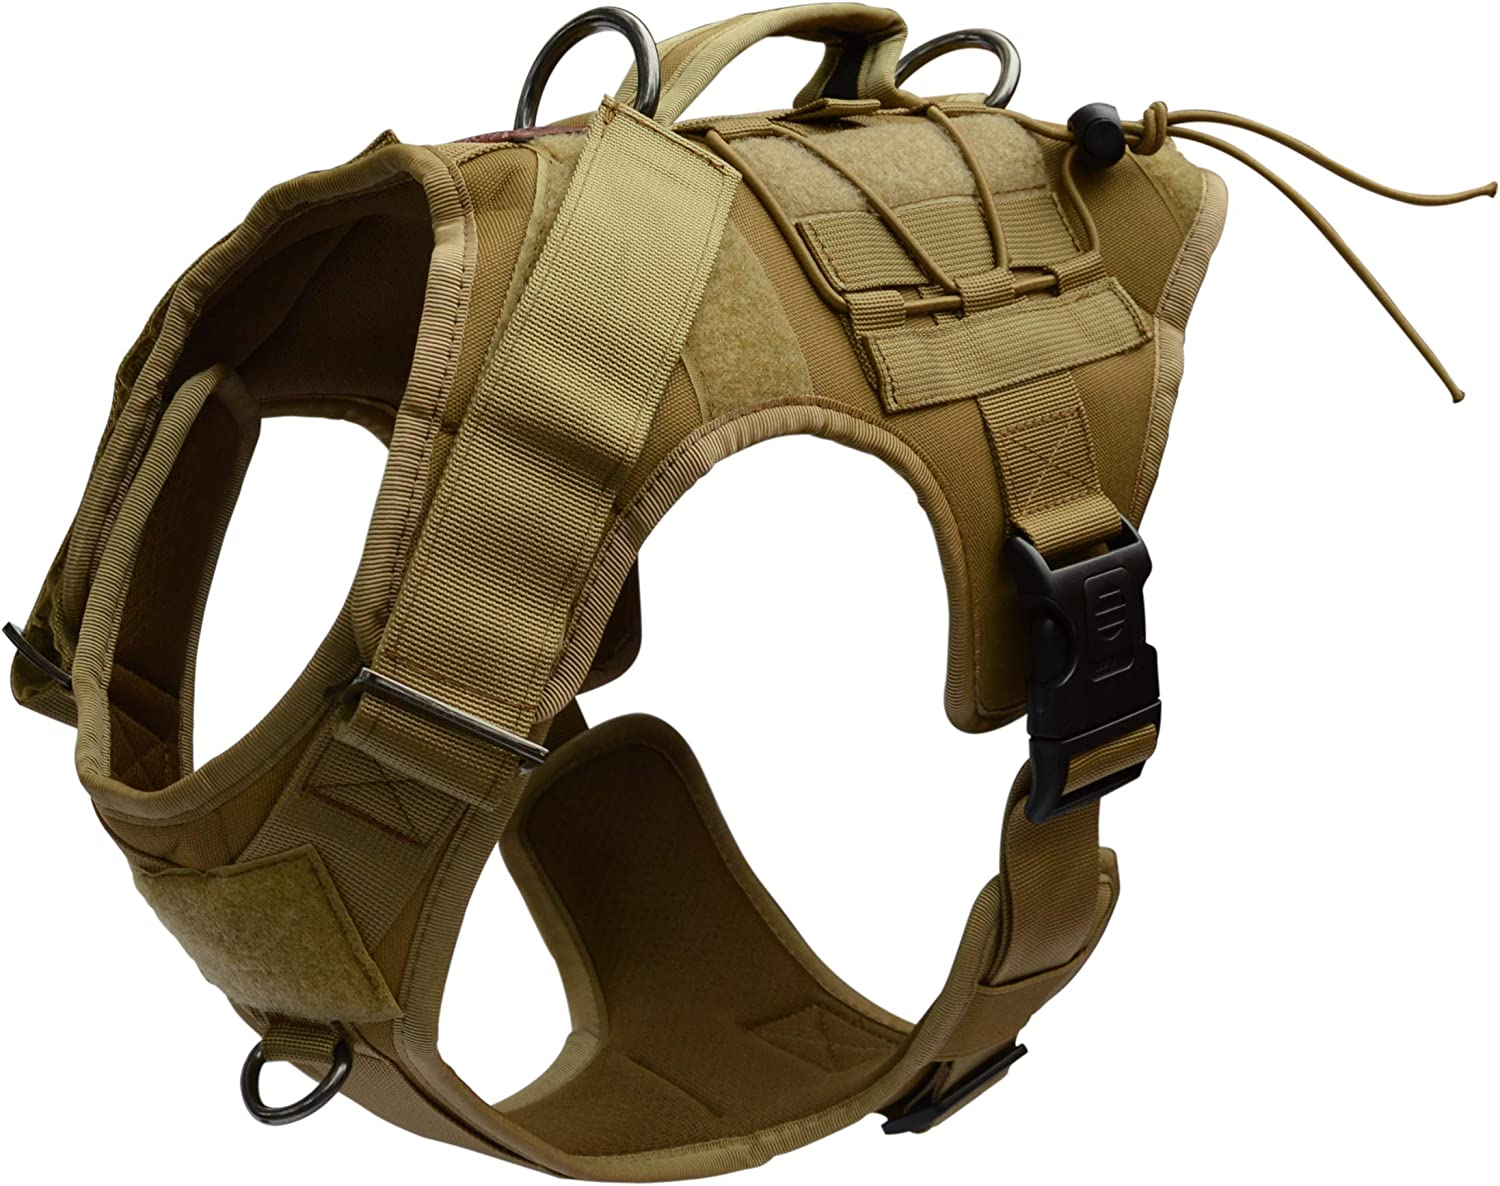 Photo of a dog harness in brown color, with buckles and velcro tapes as additional features.